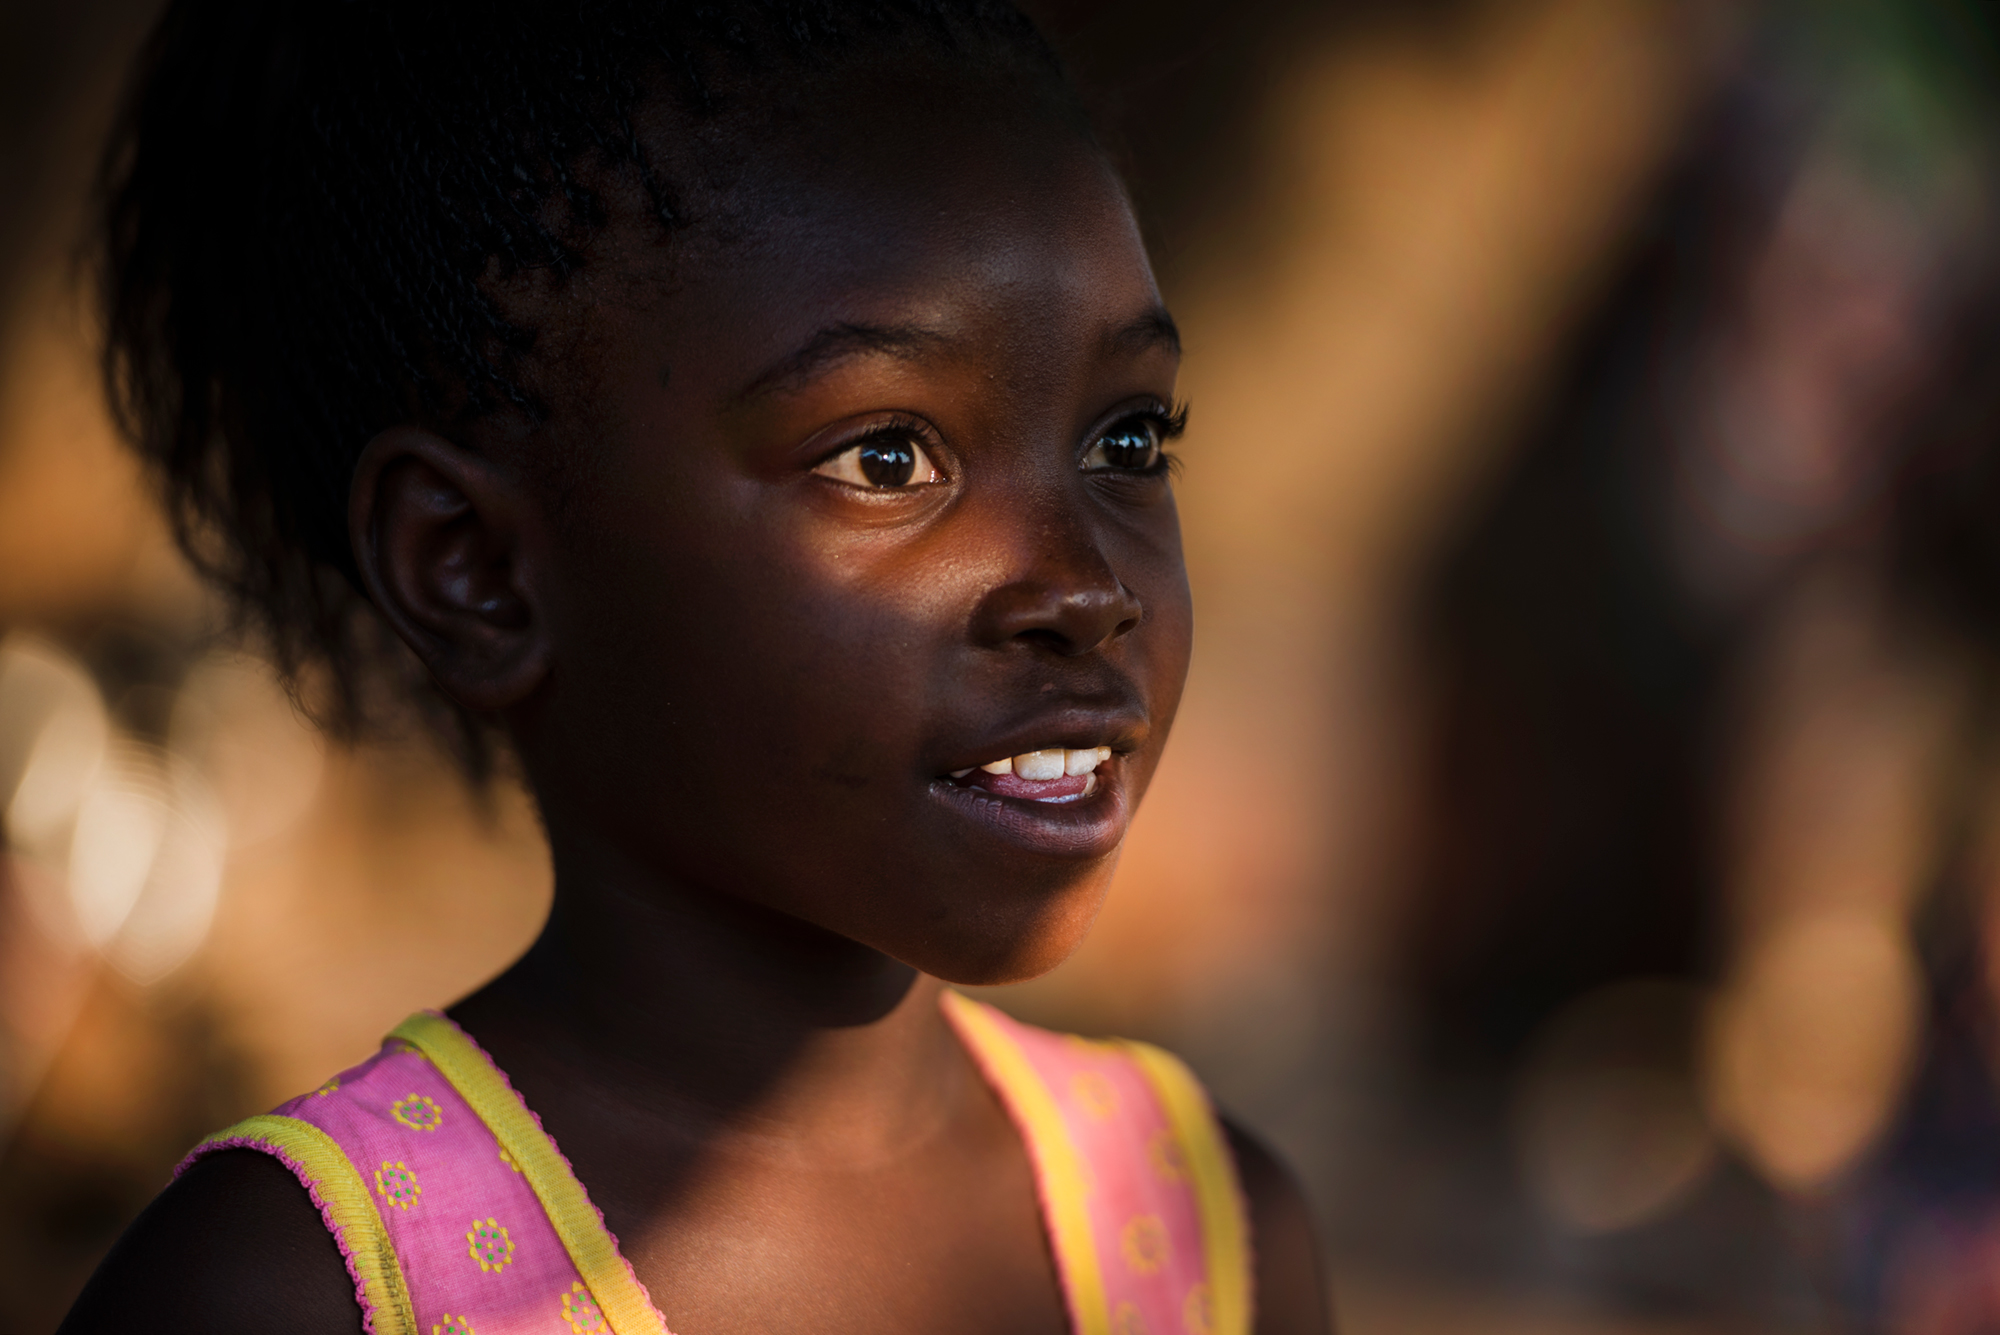 Local-girl-in-Zambia.jpg